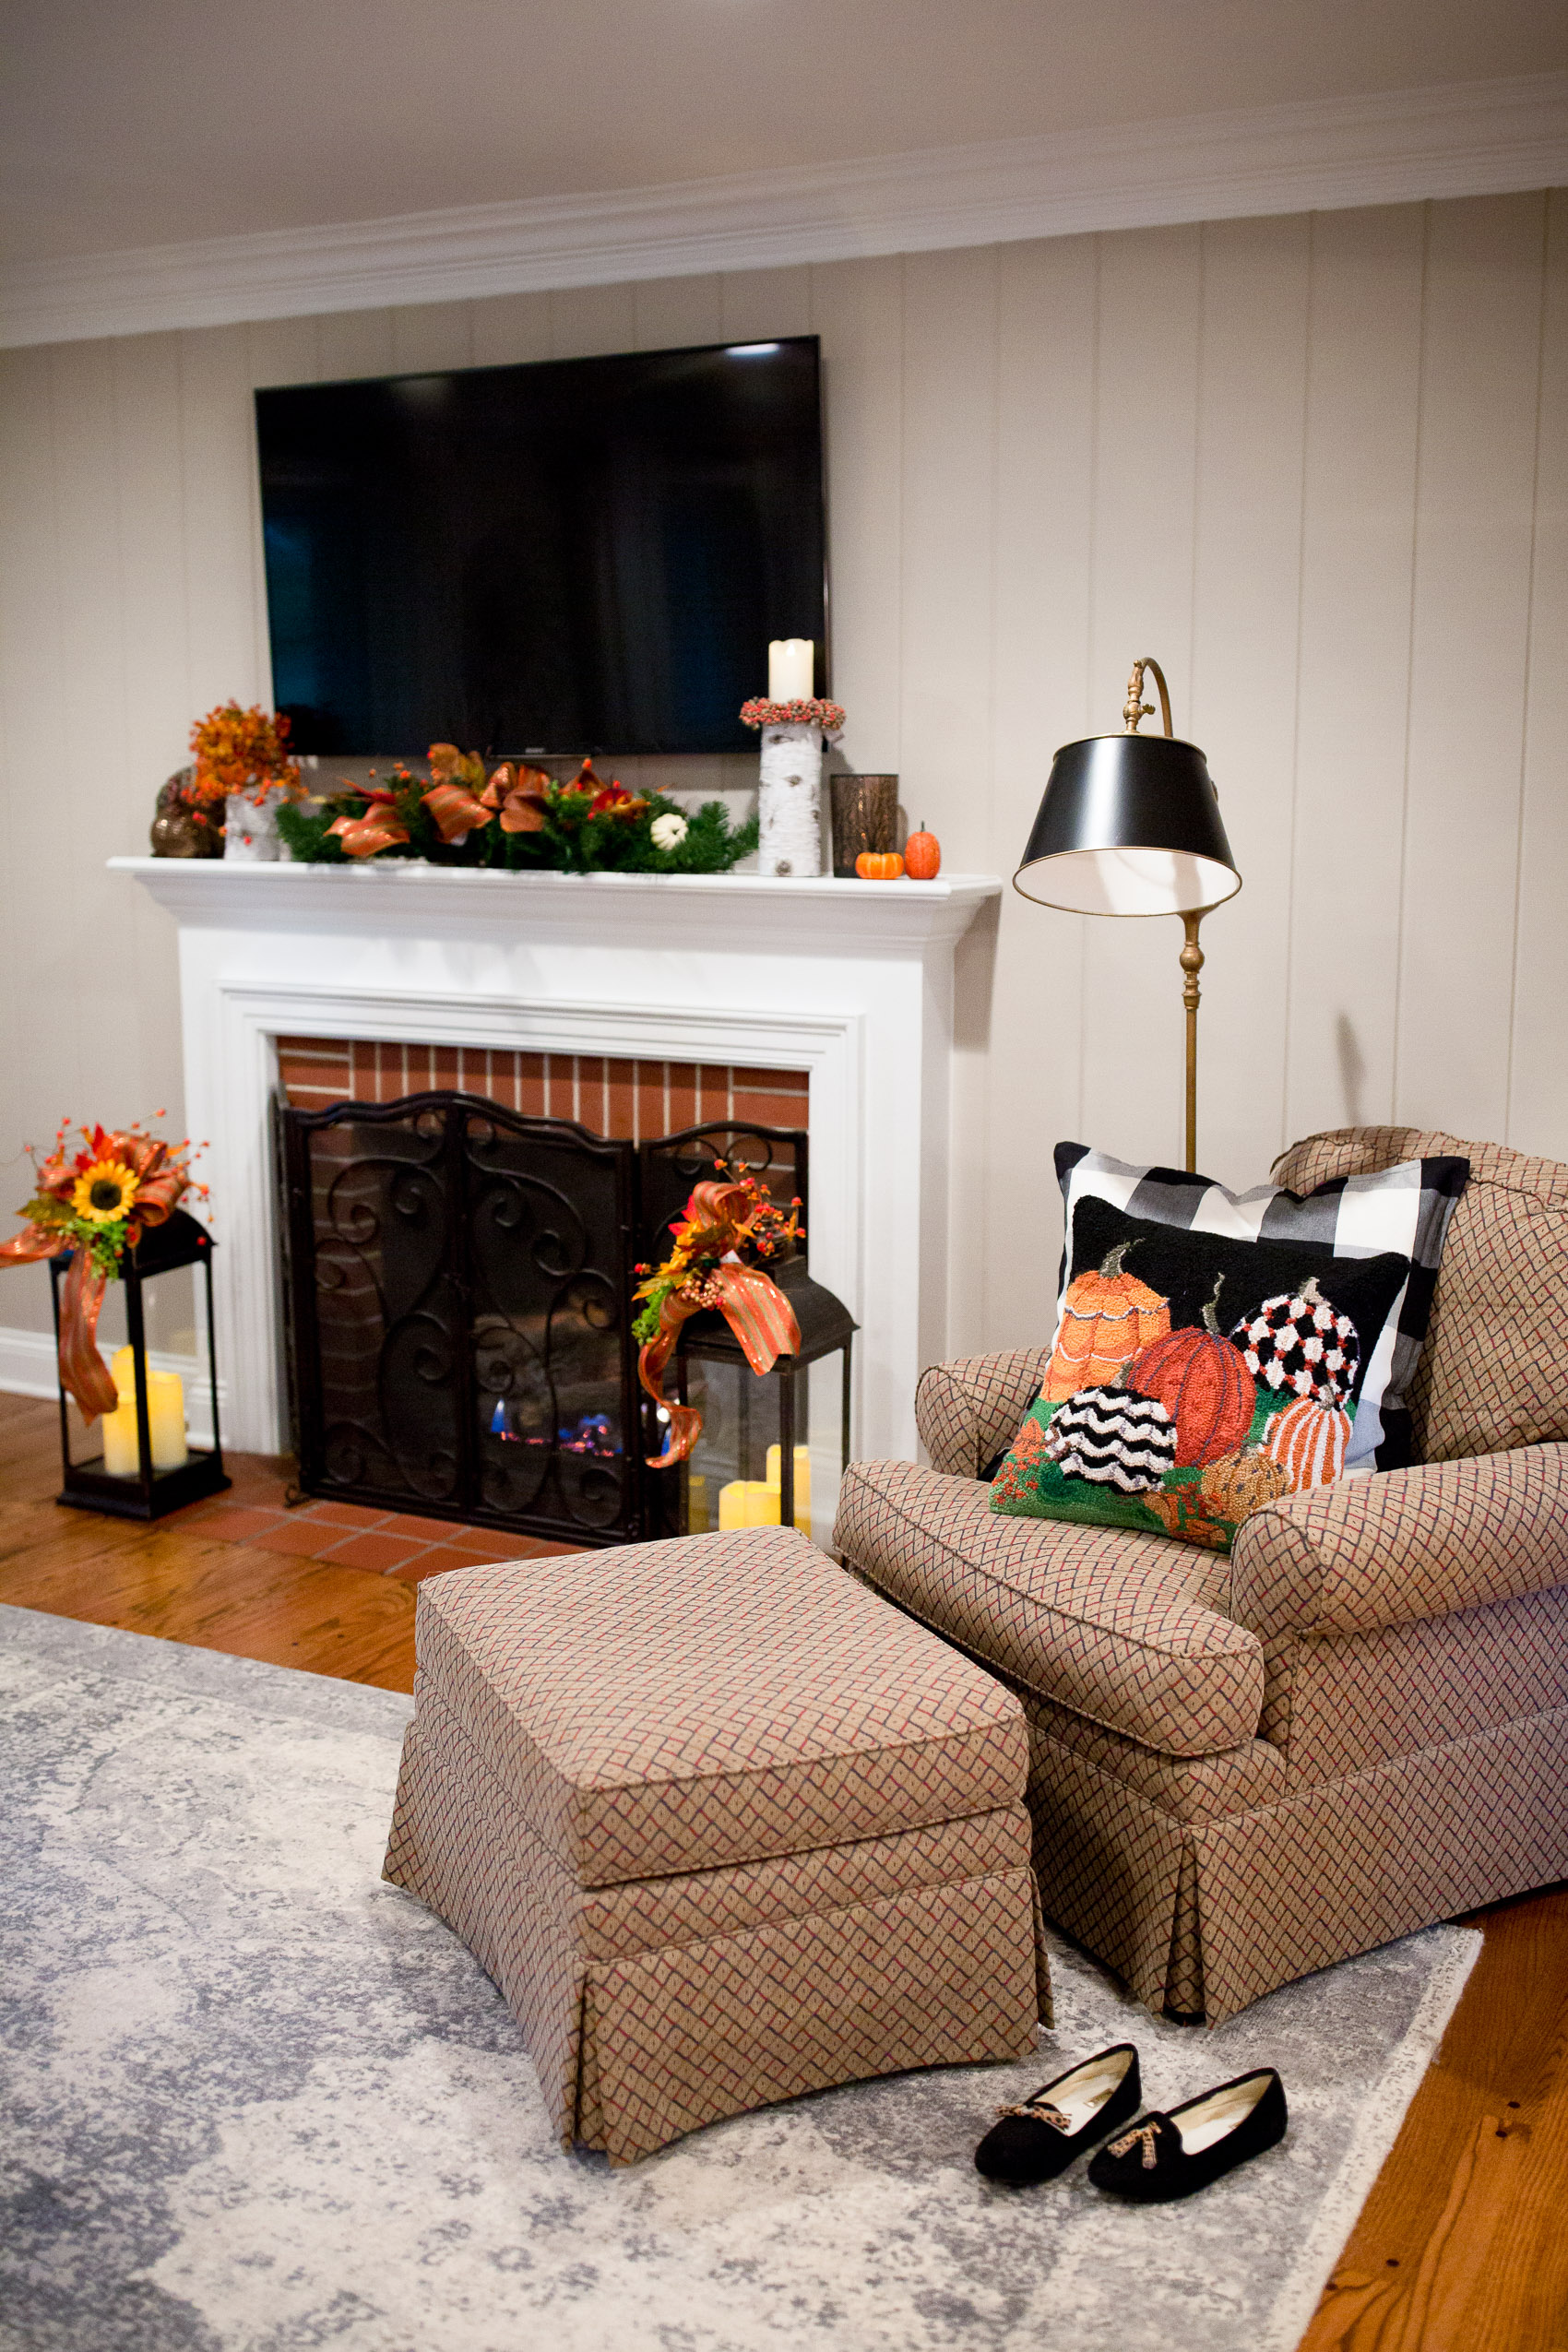 How To Decorate Fireplace How To Decorate And Transition Your Mantel For Fall And The Holidays